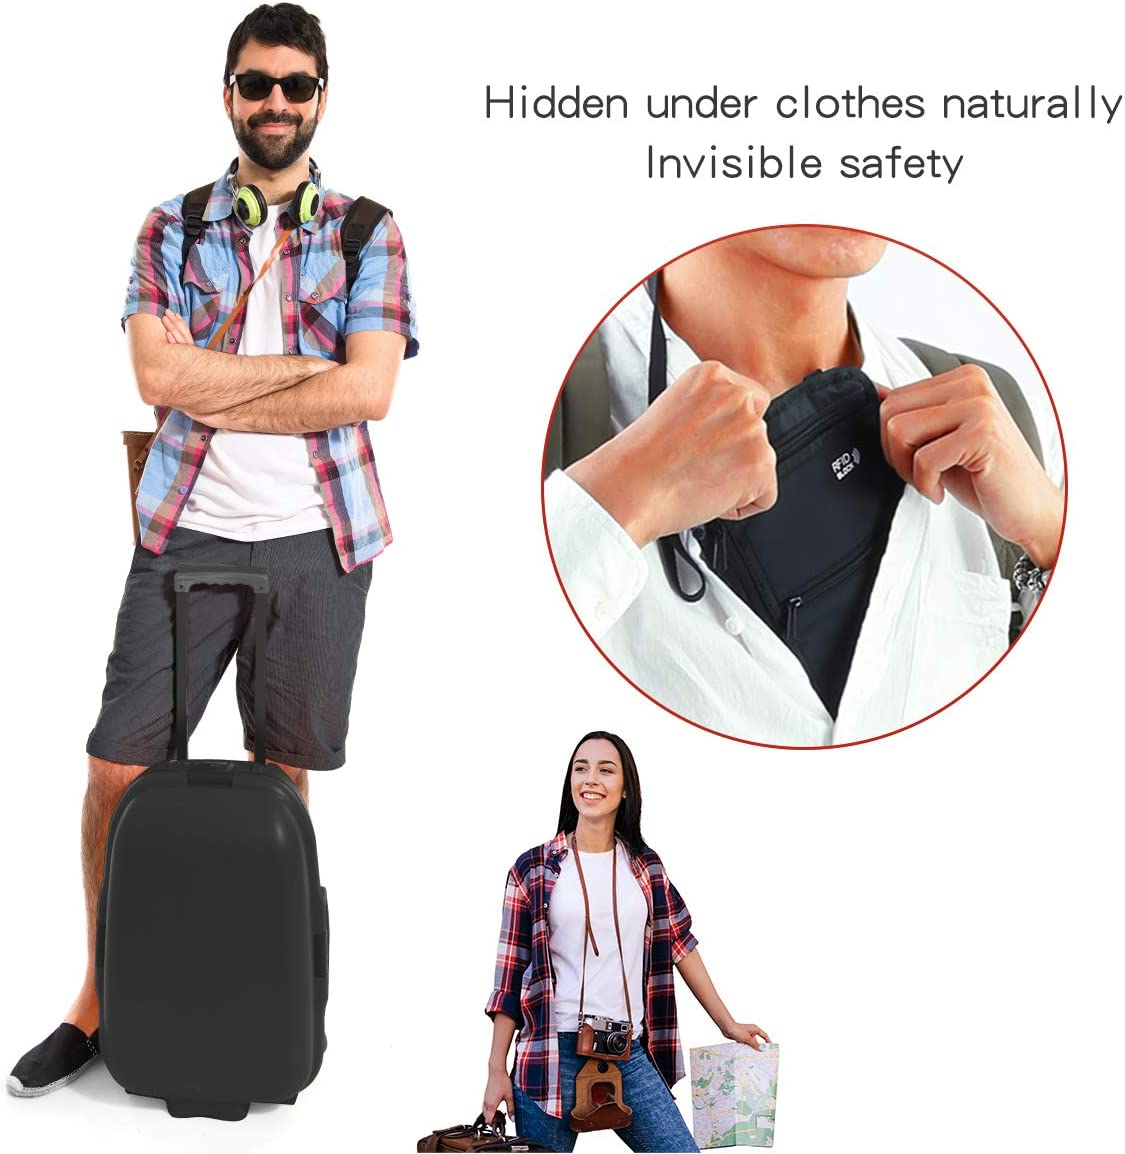 Eono by Cards Keys /& Passport with Adjustable Neck Strap RFID Hidden Security Neck Money Pouch for Cash Travel Neck Wallet with Multi-Pockets